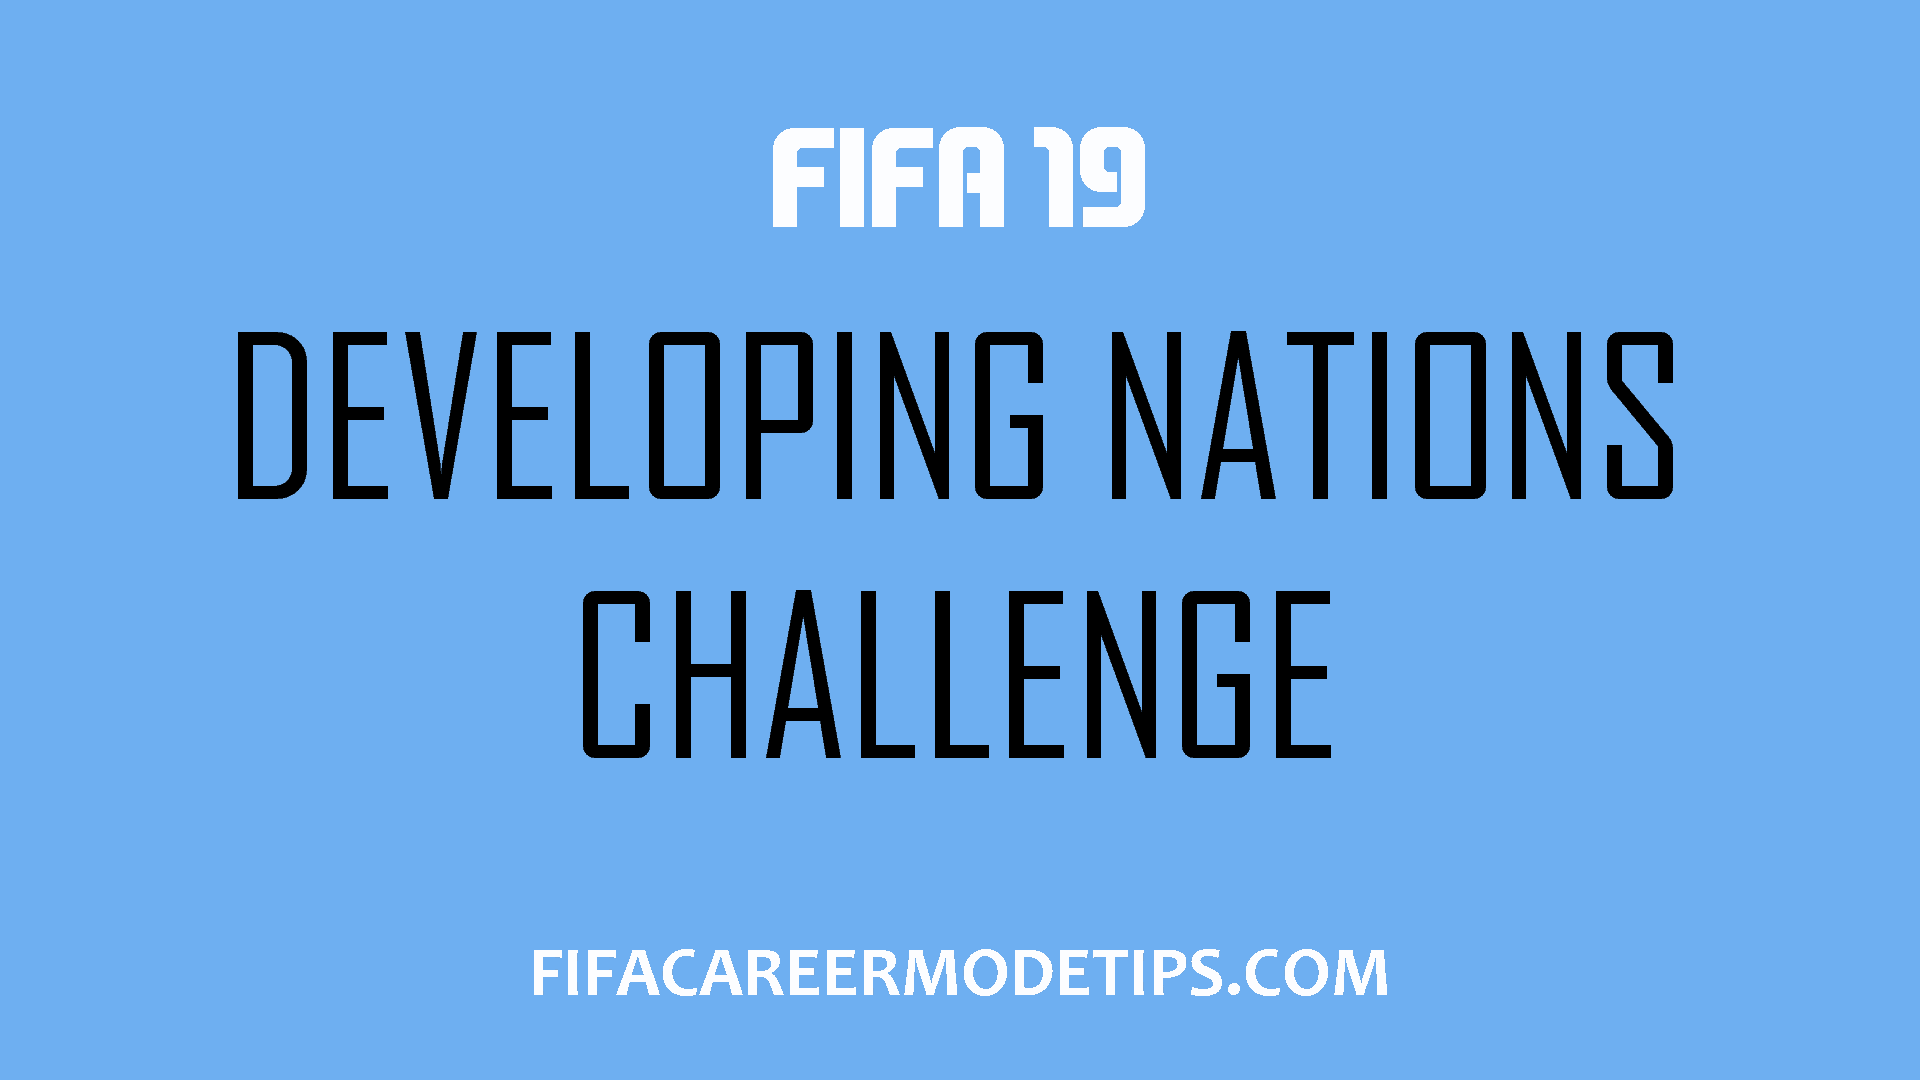 Developing Nations Challenge